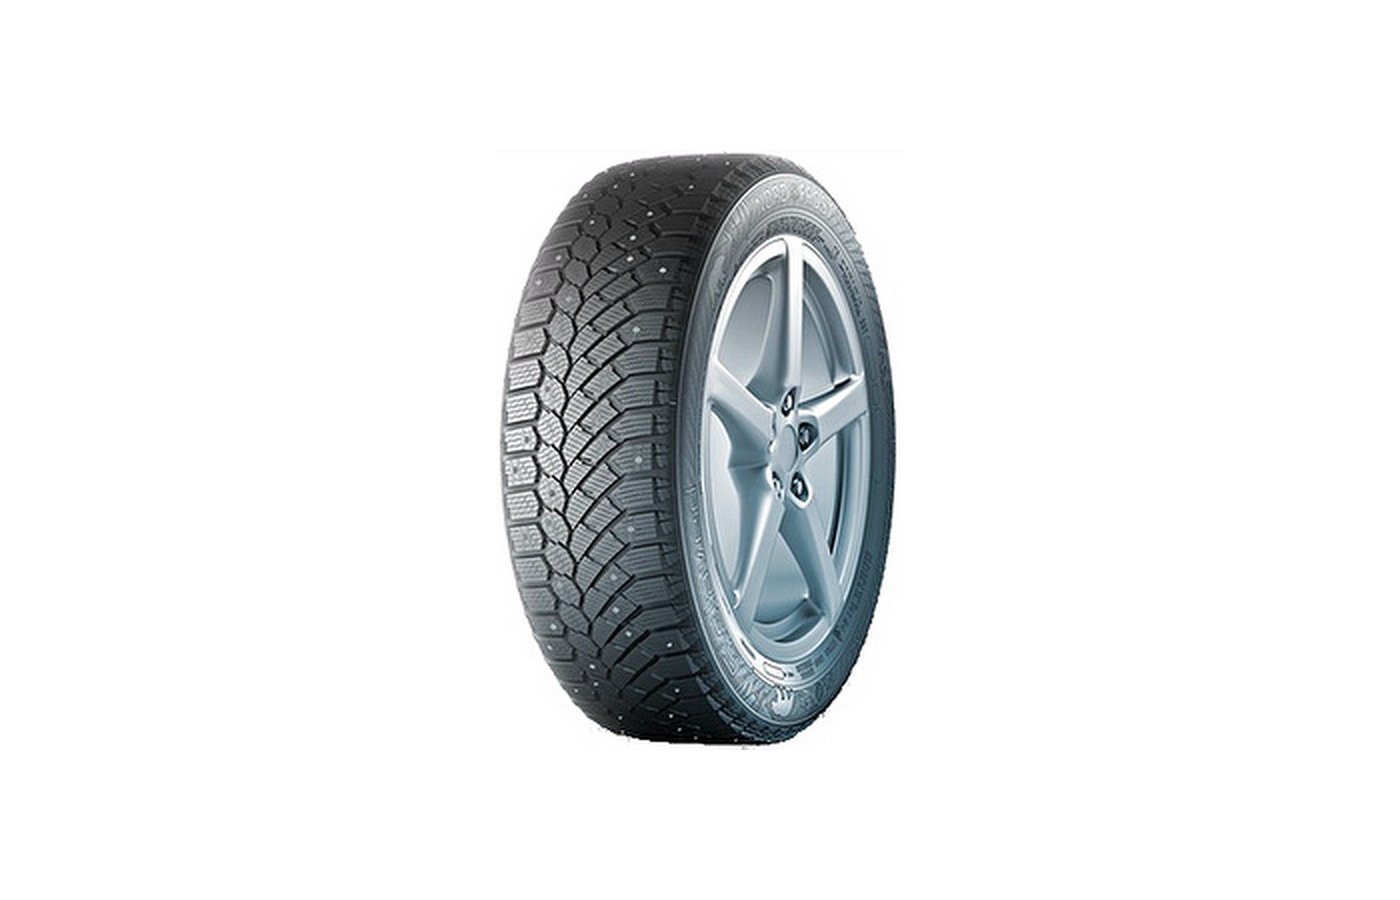 Шина Gislaved NordFrost 200 215/55 R16 TL 97T XL шип